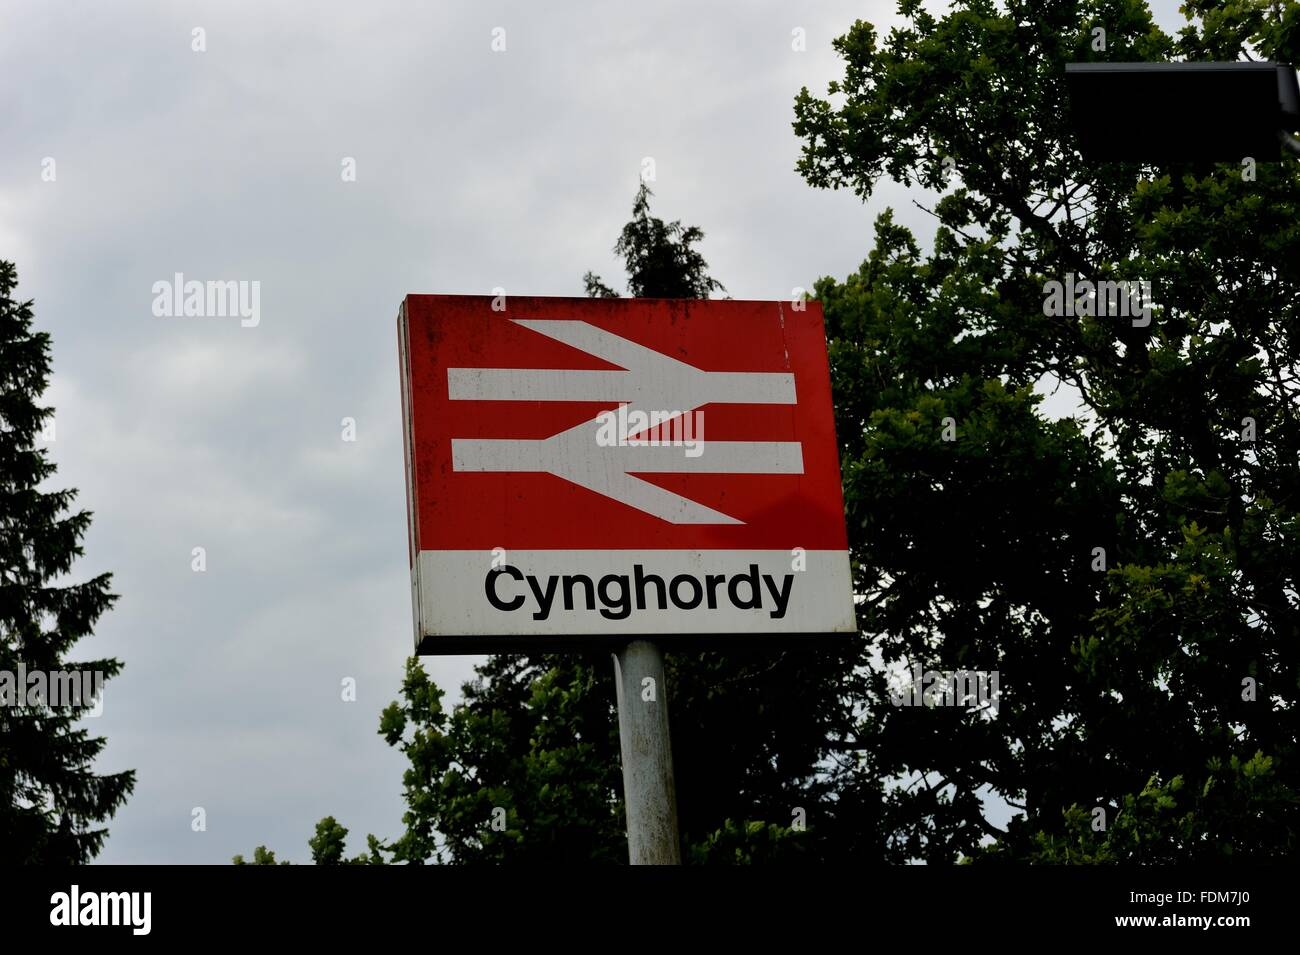 Cynghordy, double arrow National Rail Network station sign. Central / Heart of Wales Line. Wales, UK. - Stock Image